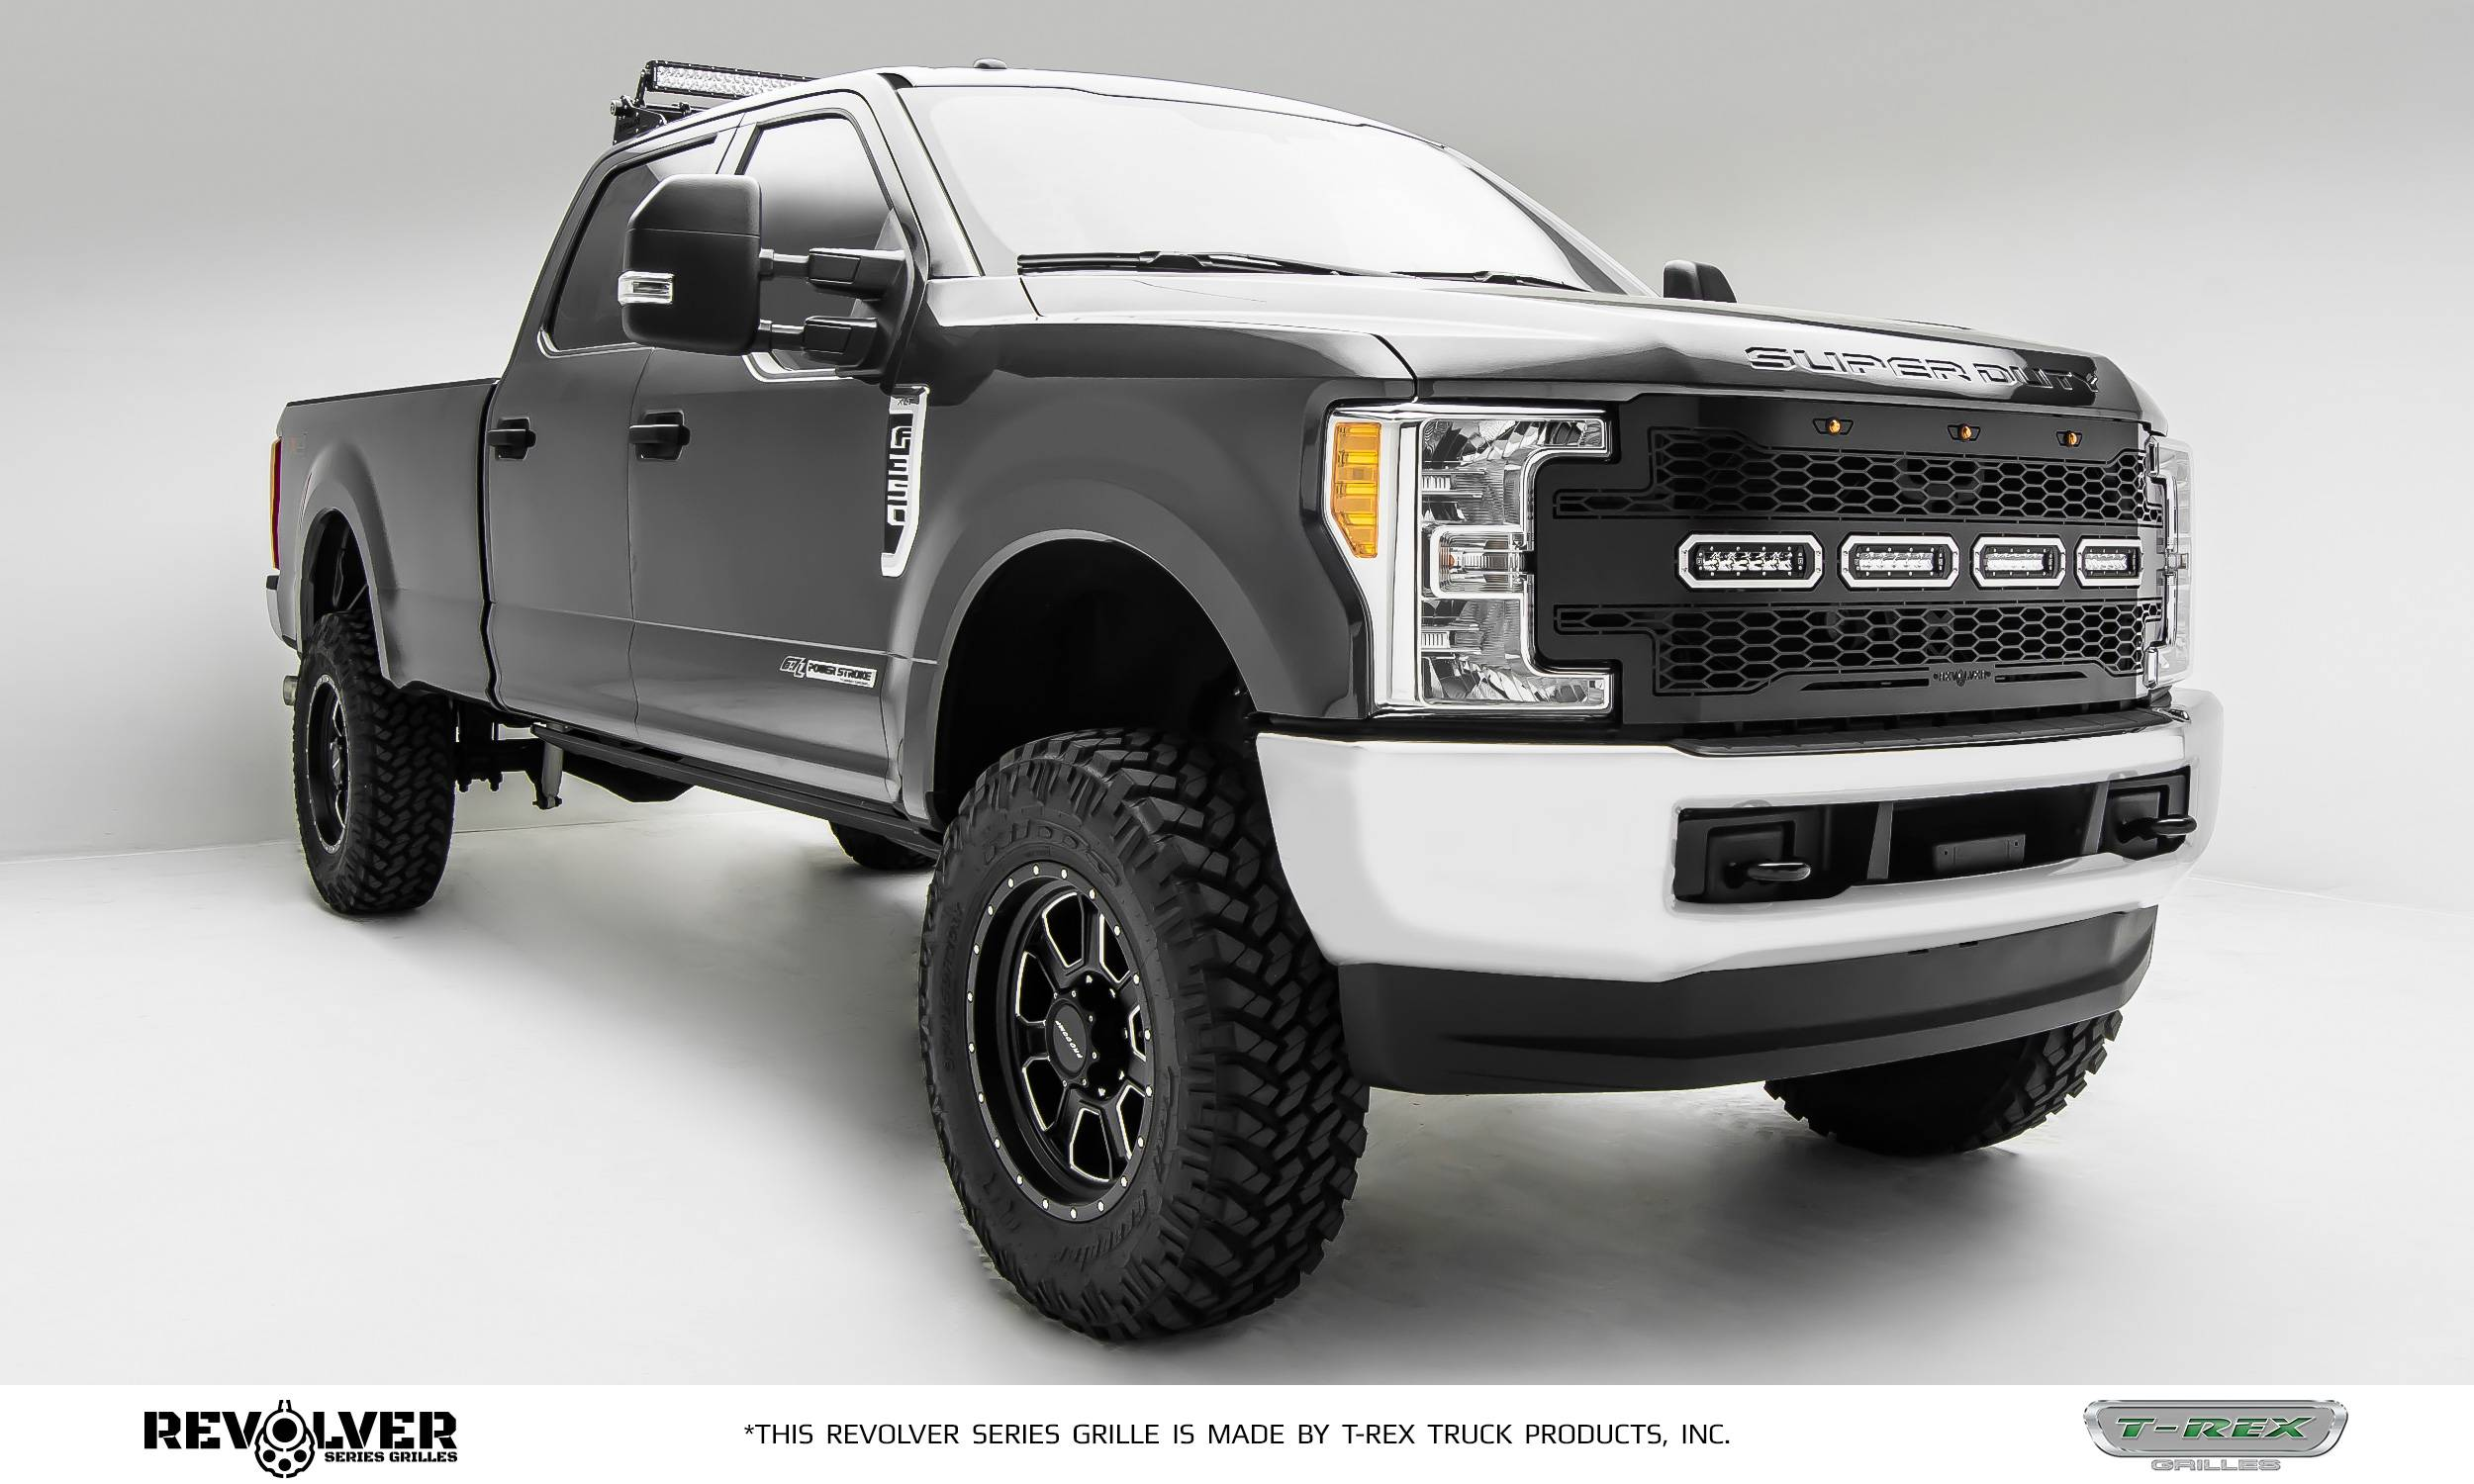 Revolver series grille options for the 2017 ford super duty